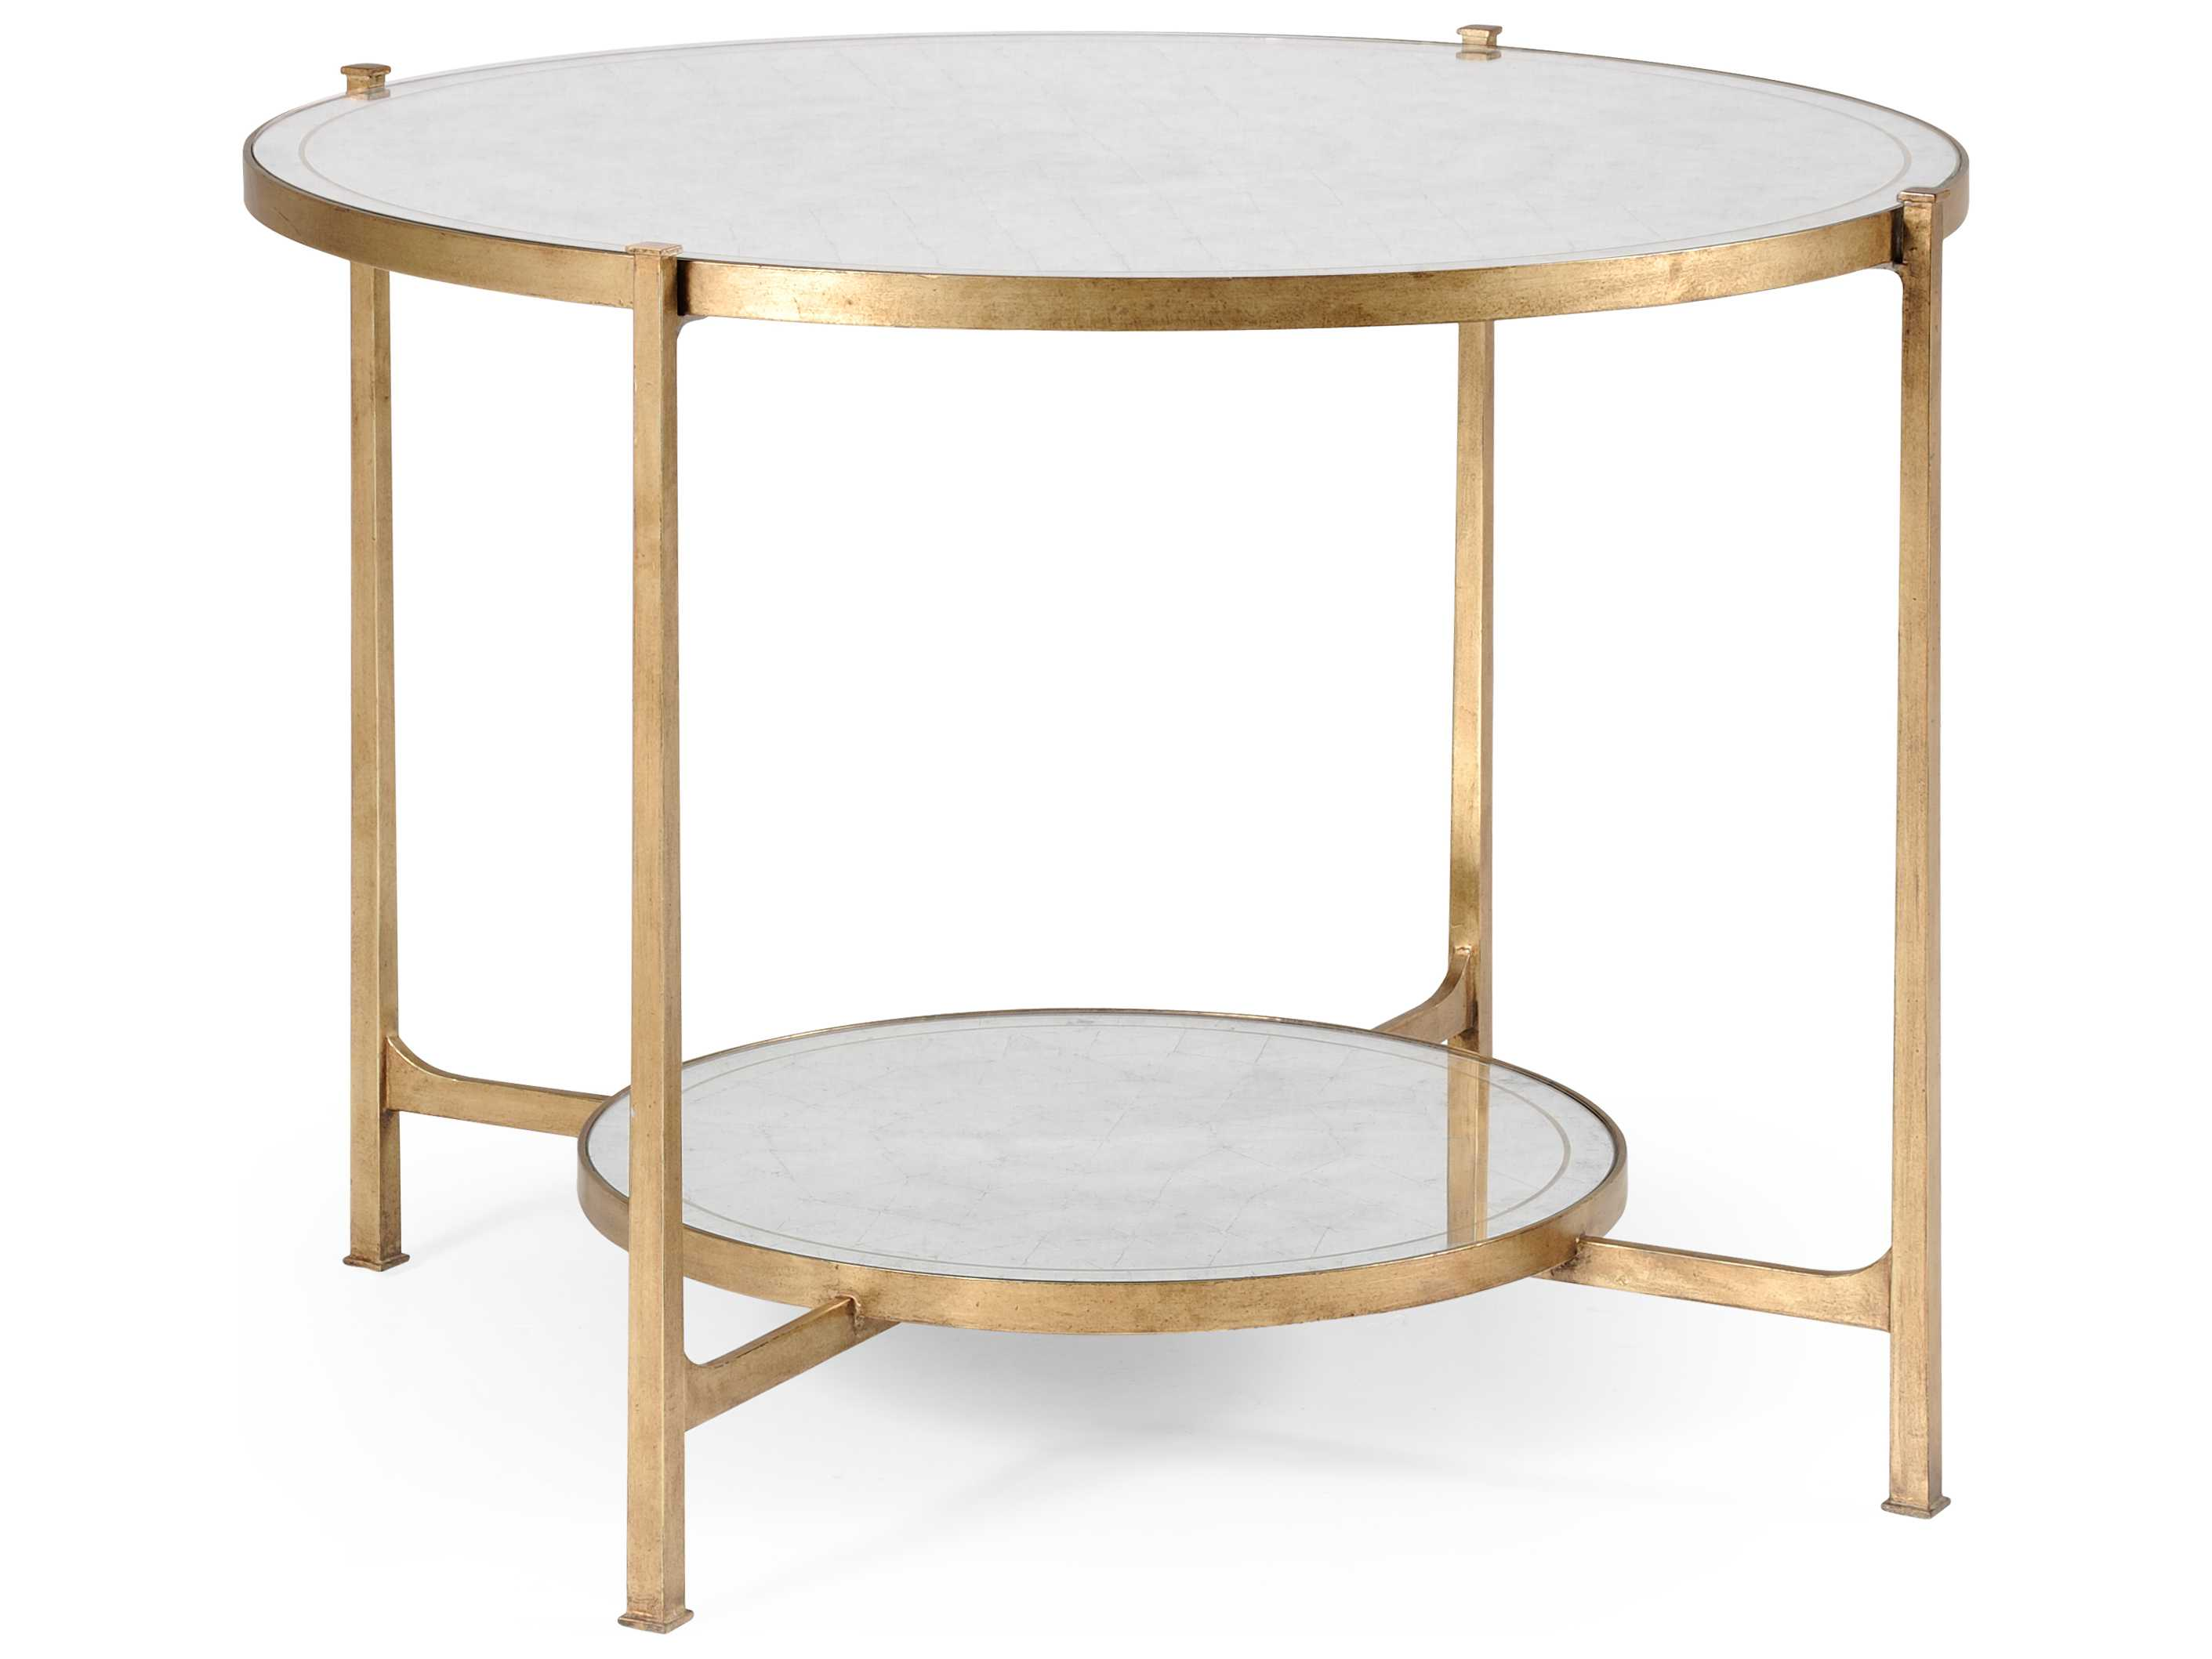 Jonathan Charles Luxe Gilded Iron 425 Round Foyer Table  : JC494104Gzm from www.luxedecor.com size 2822 x 2117 jpeg 133kB